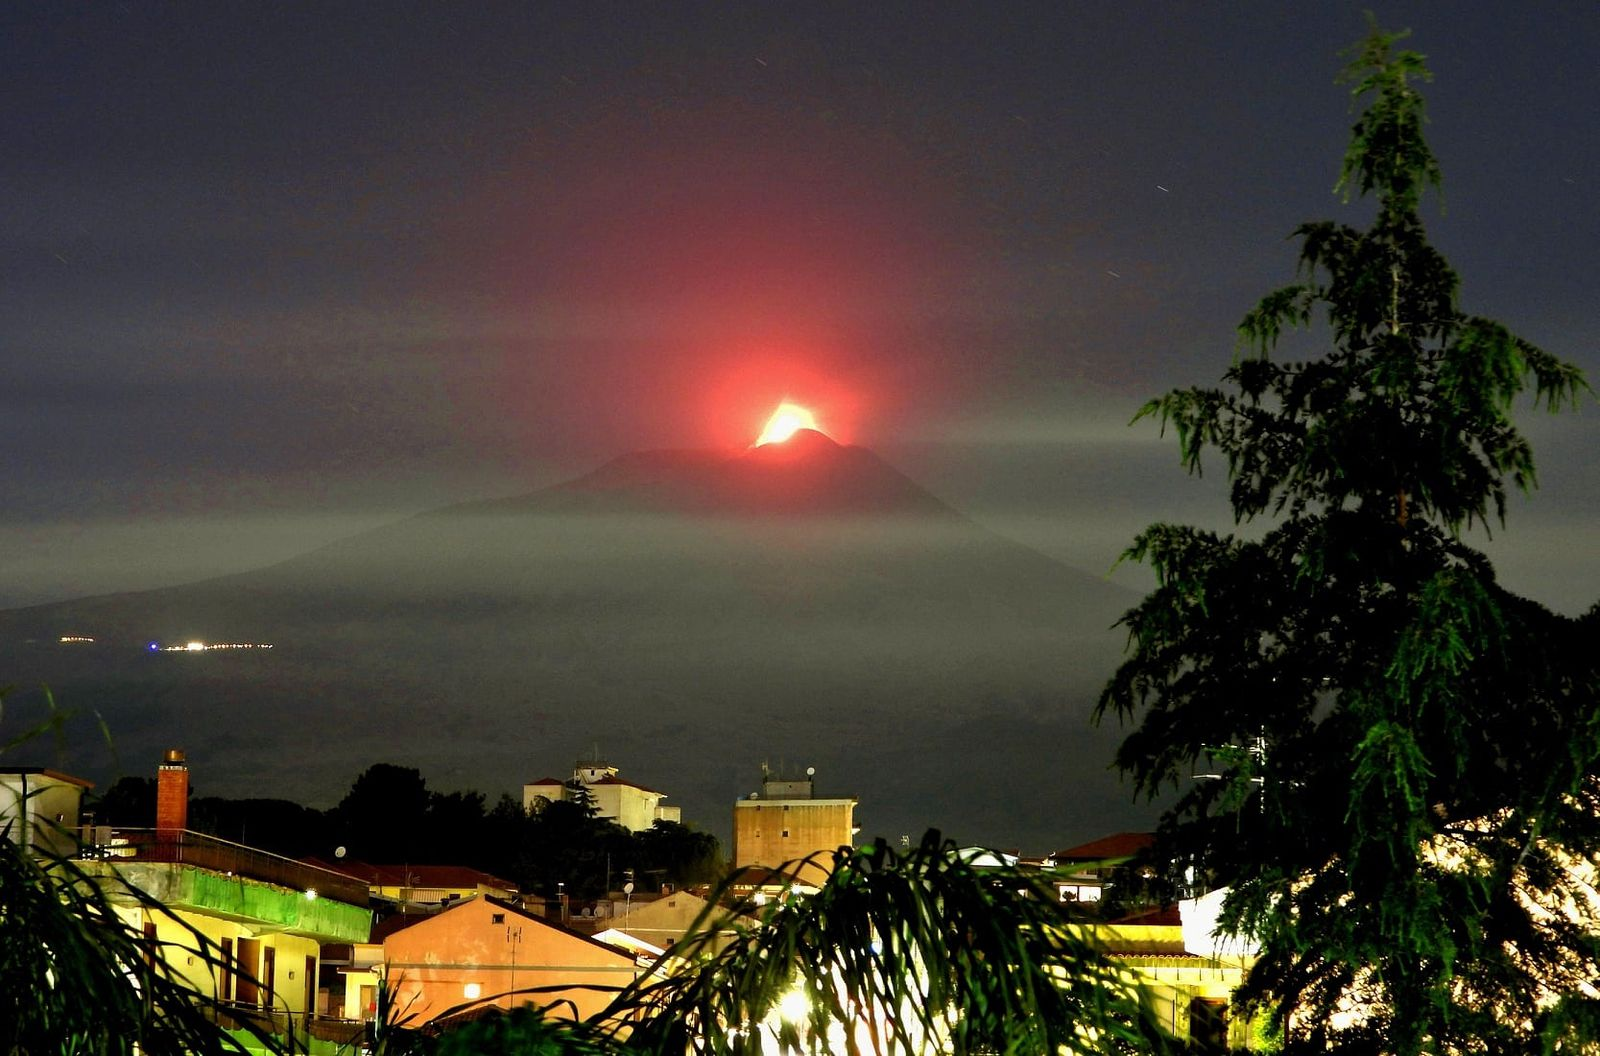 Etna SEC - 24.05.2021 / 22:23 - Lava fountain; the haze in layered layer is due to fires - photo Boris Behncke